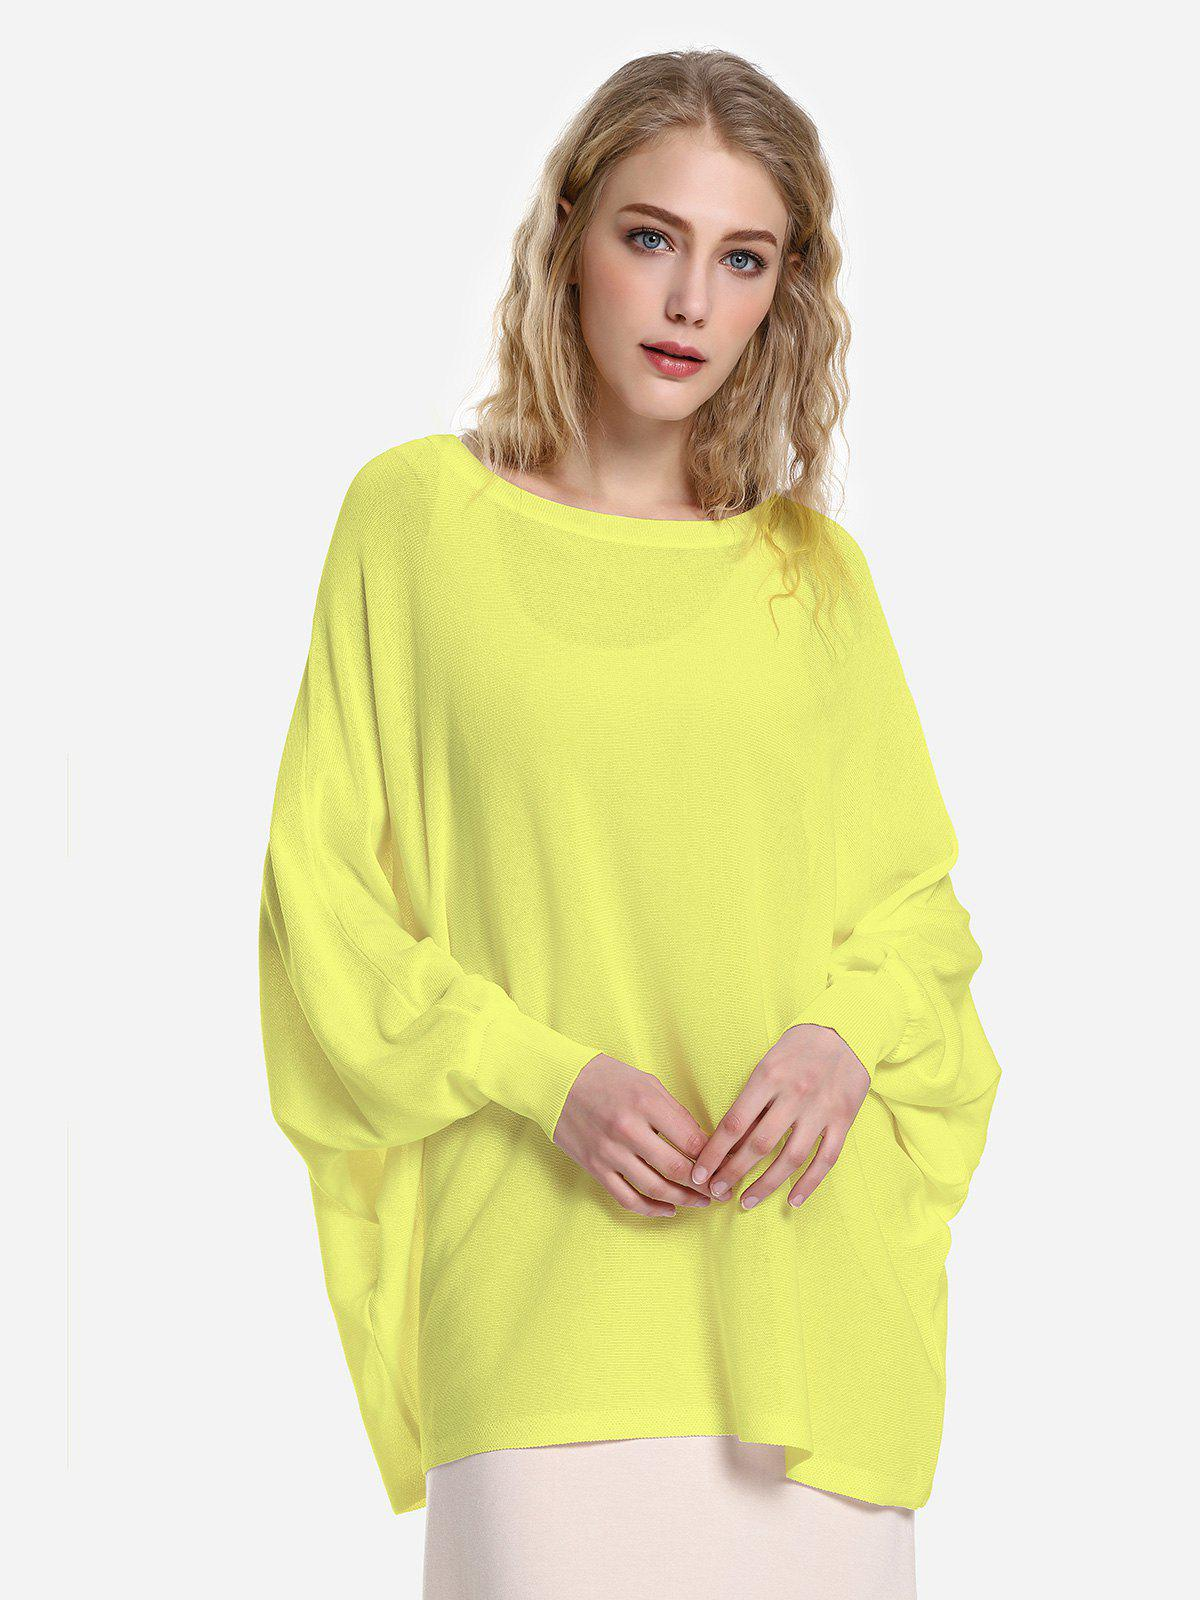 ZAN.STYLE Long Sleeve Round Neck Top - YELLOW M